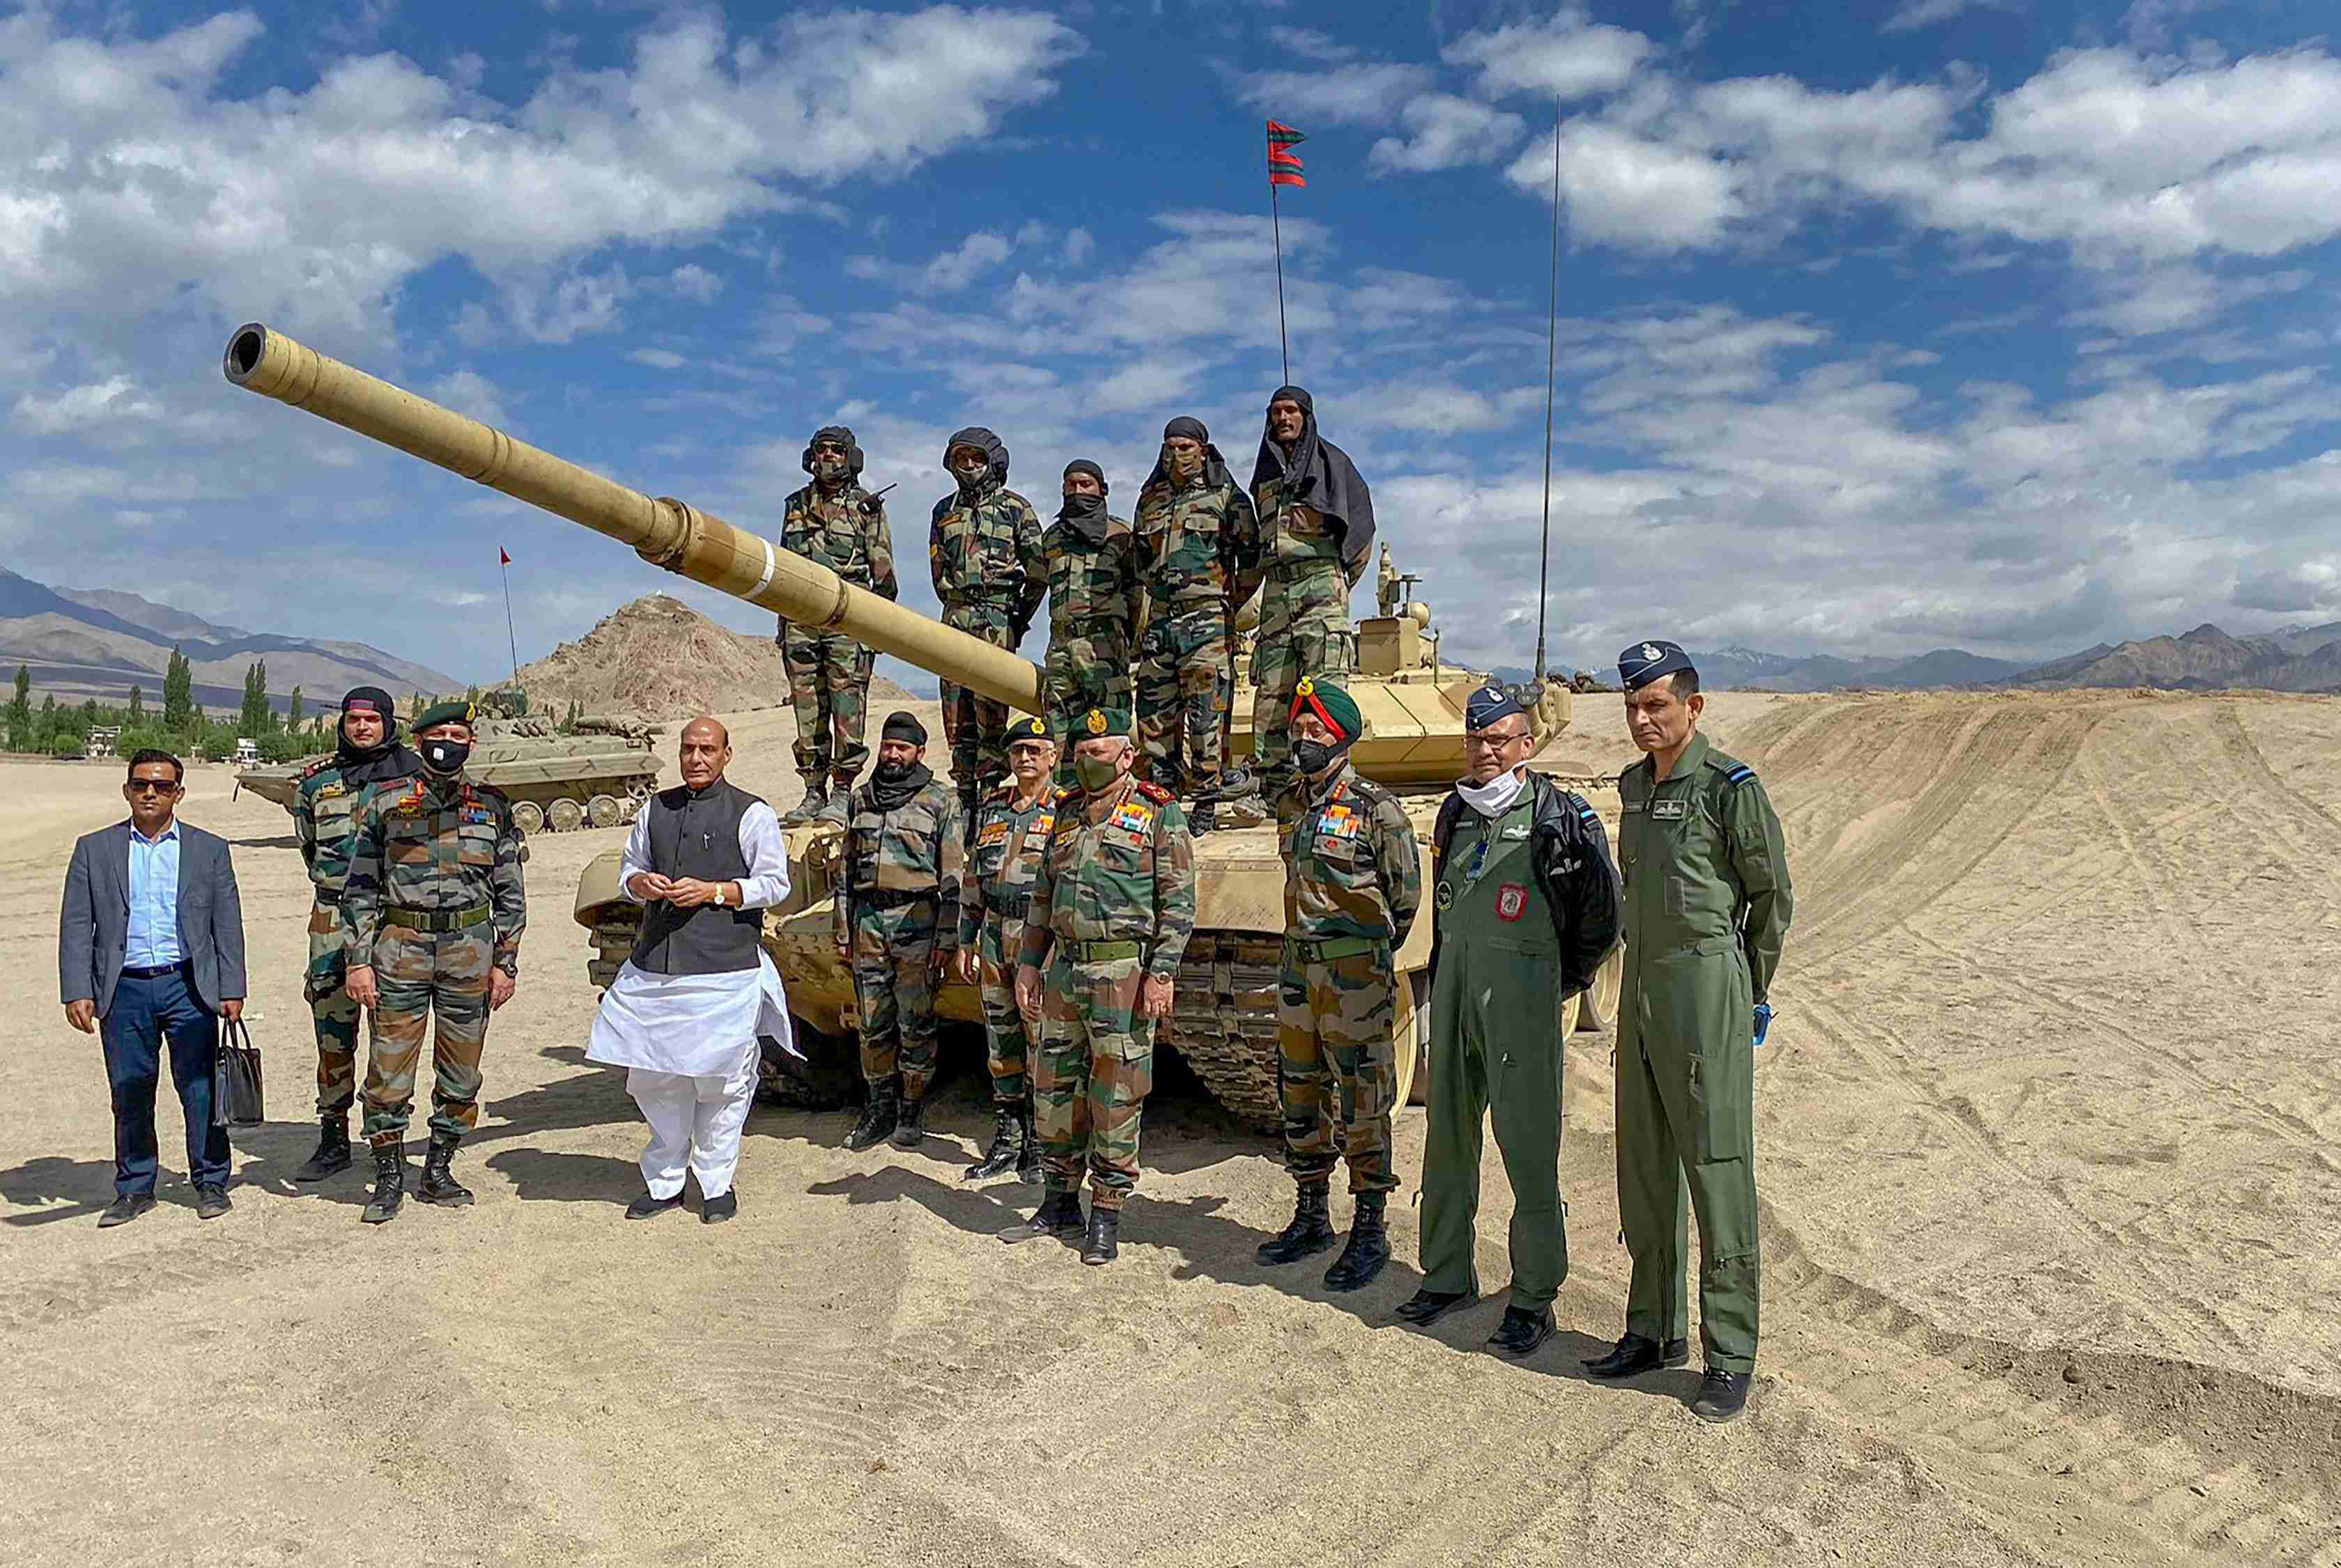 Rajnath Singh poses with troops who took part in para dropping and other military exercises in Leh, Ladakh, Friday, July 17, 2020.